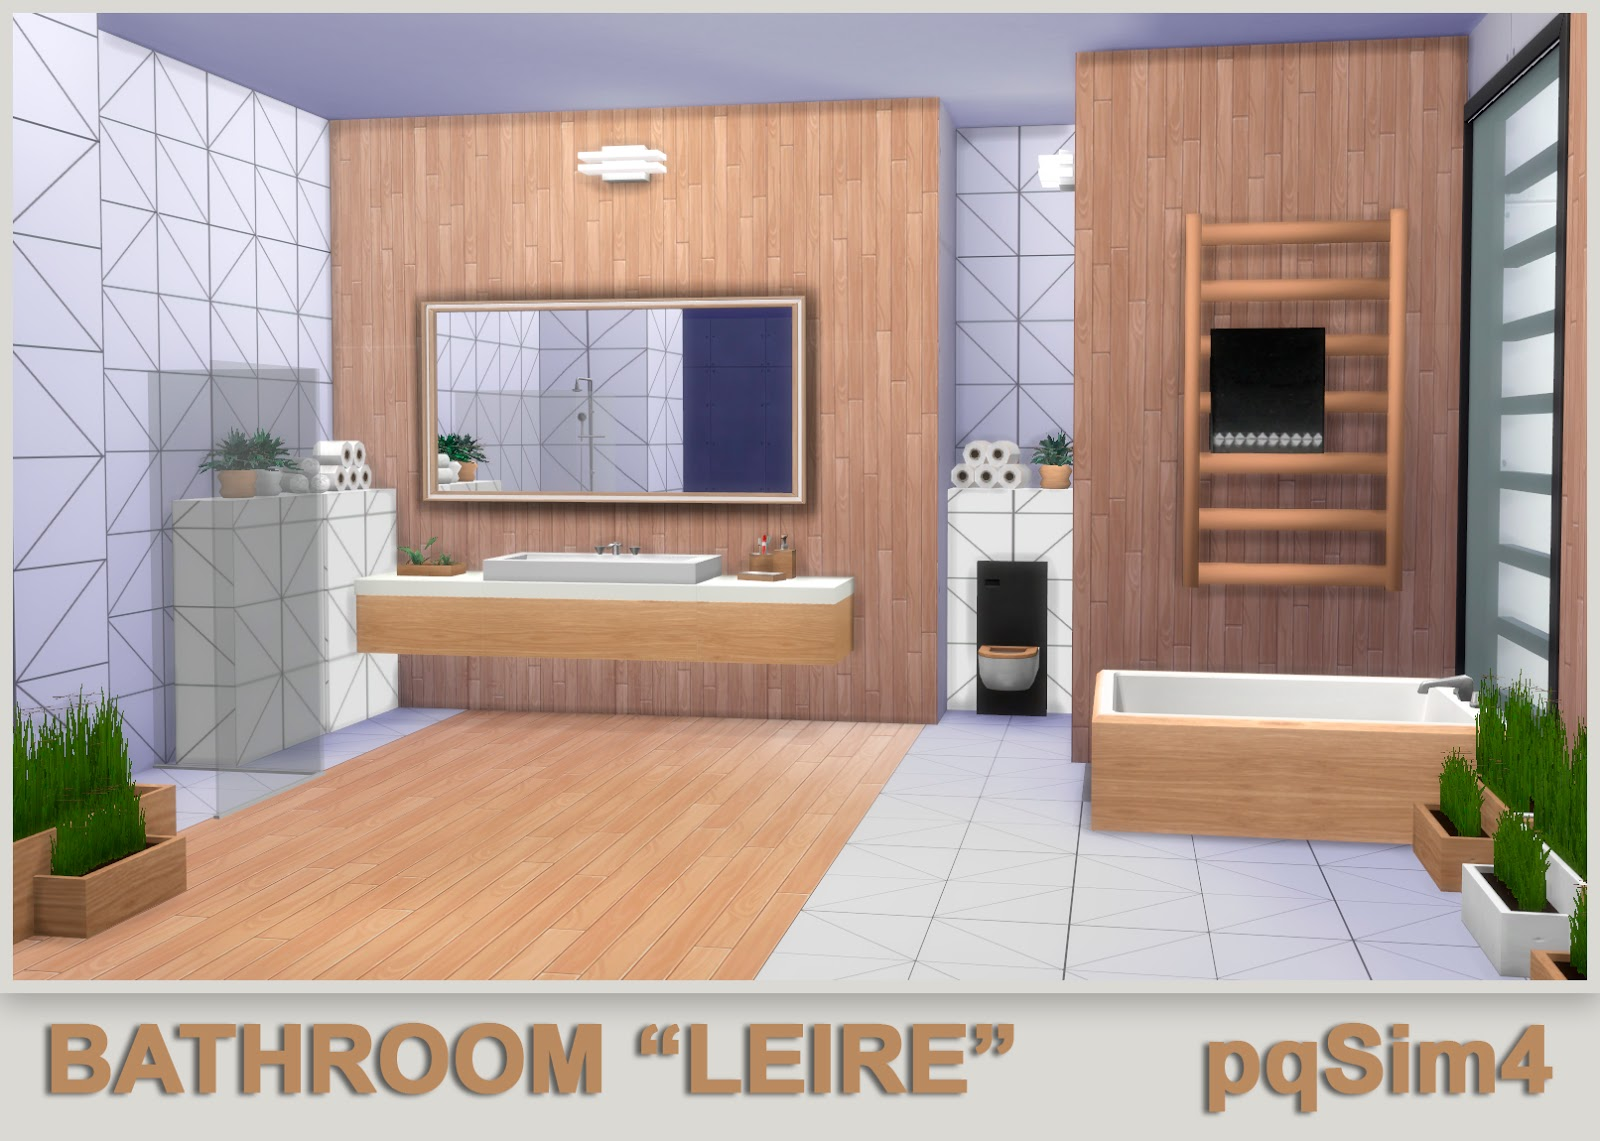 """We use cookies and other data collection technologies to provide the best experience for our customers. Bathroom """"Leire"""". Sims 4 Custom Content."""